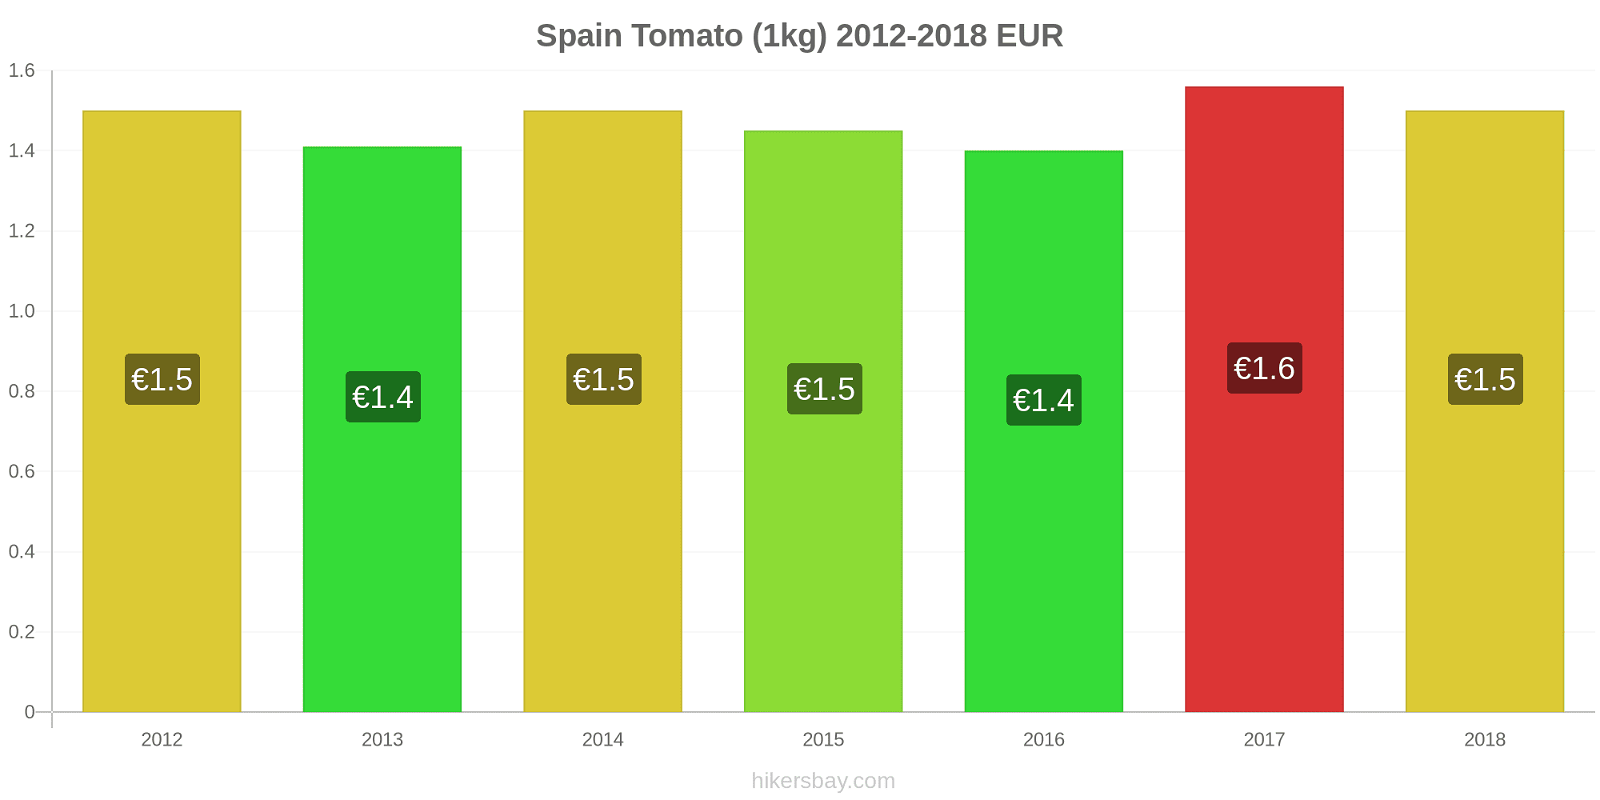 Spain price changes Tomato (1kg) hikersbay.com